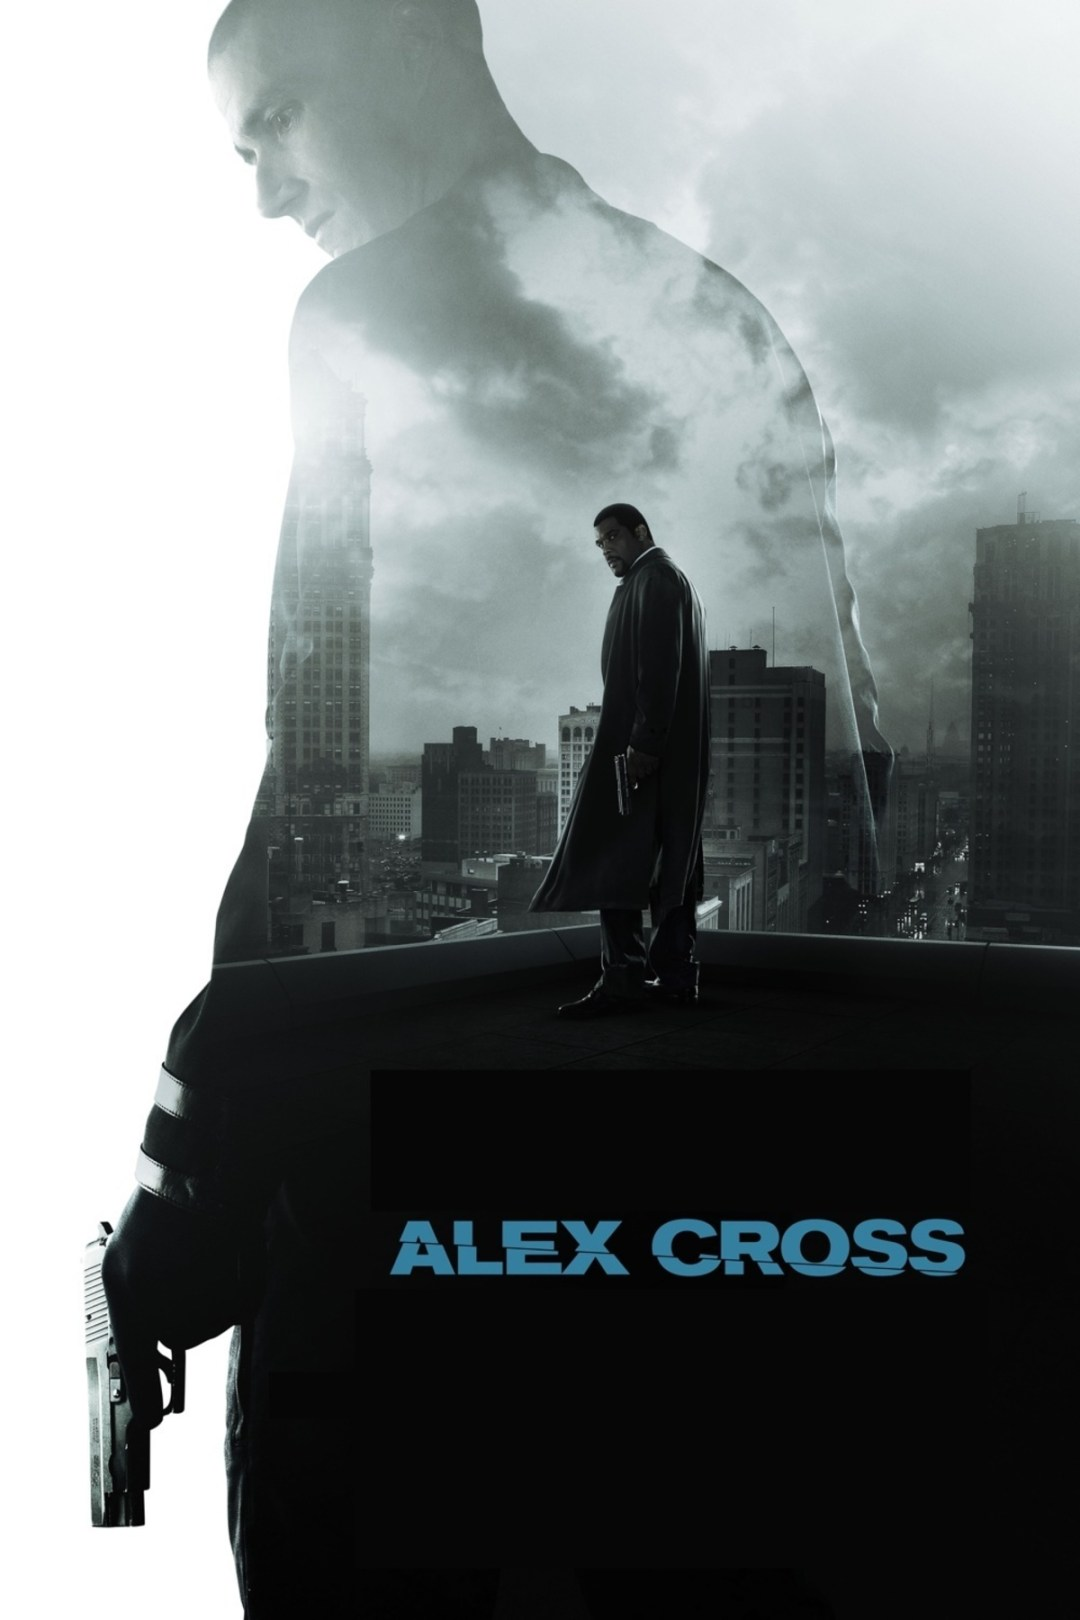 Don't Ever Cross Alex Cross  poster is copied by The Bankster